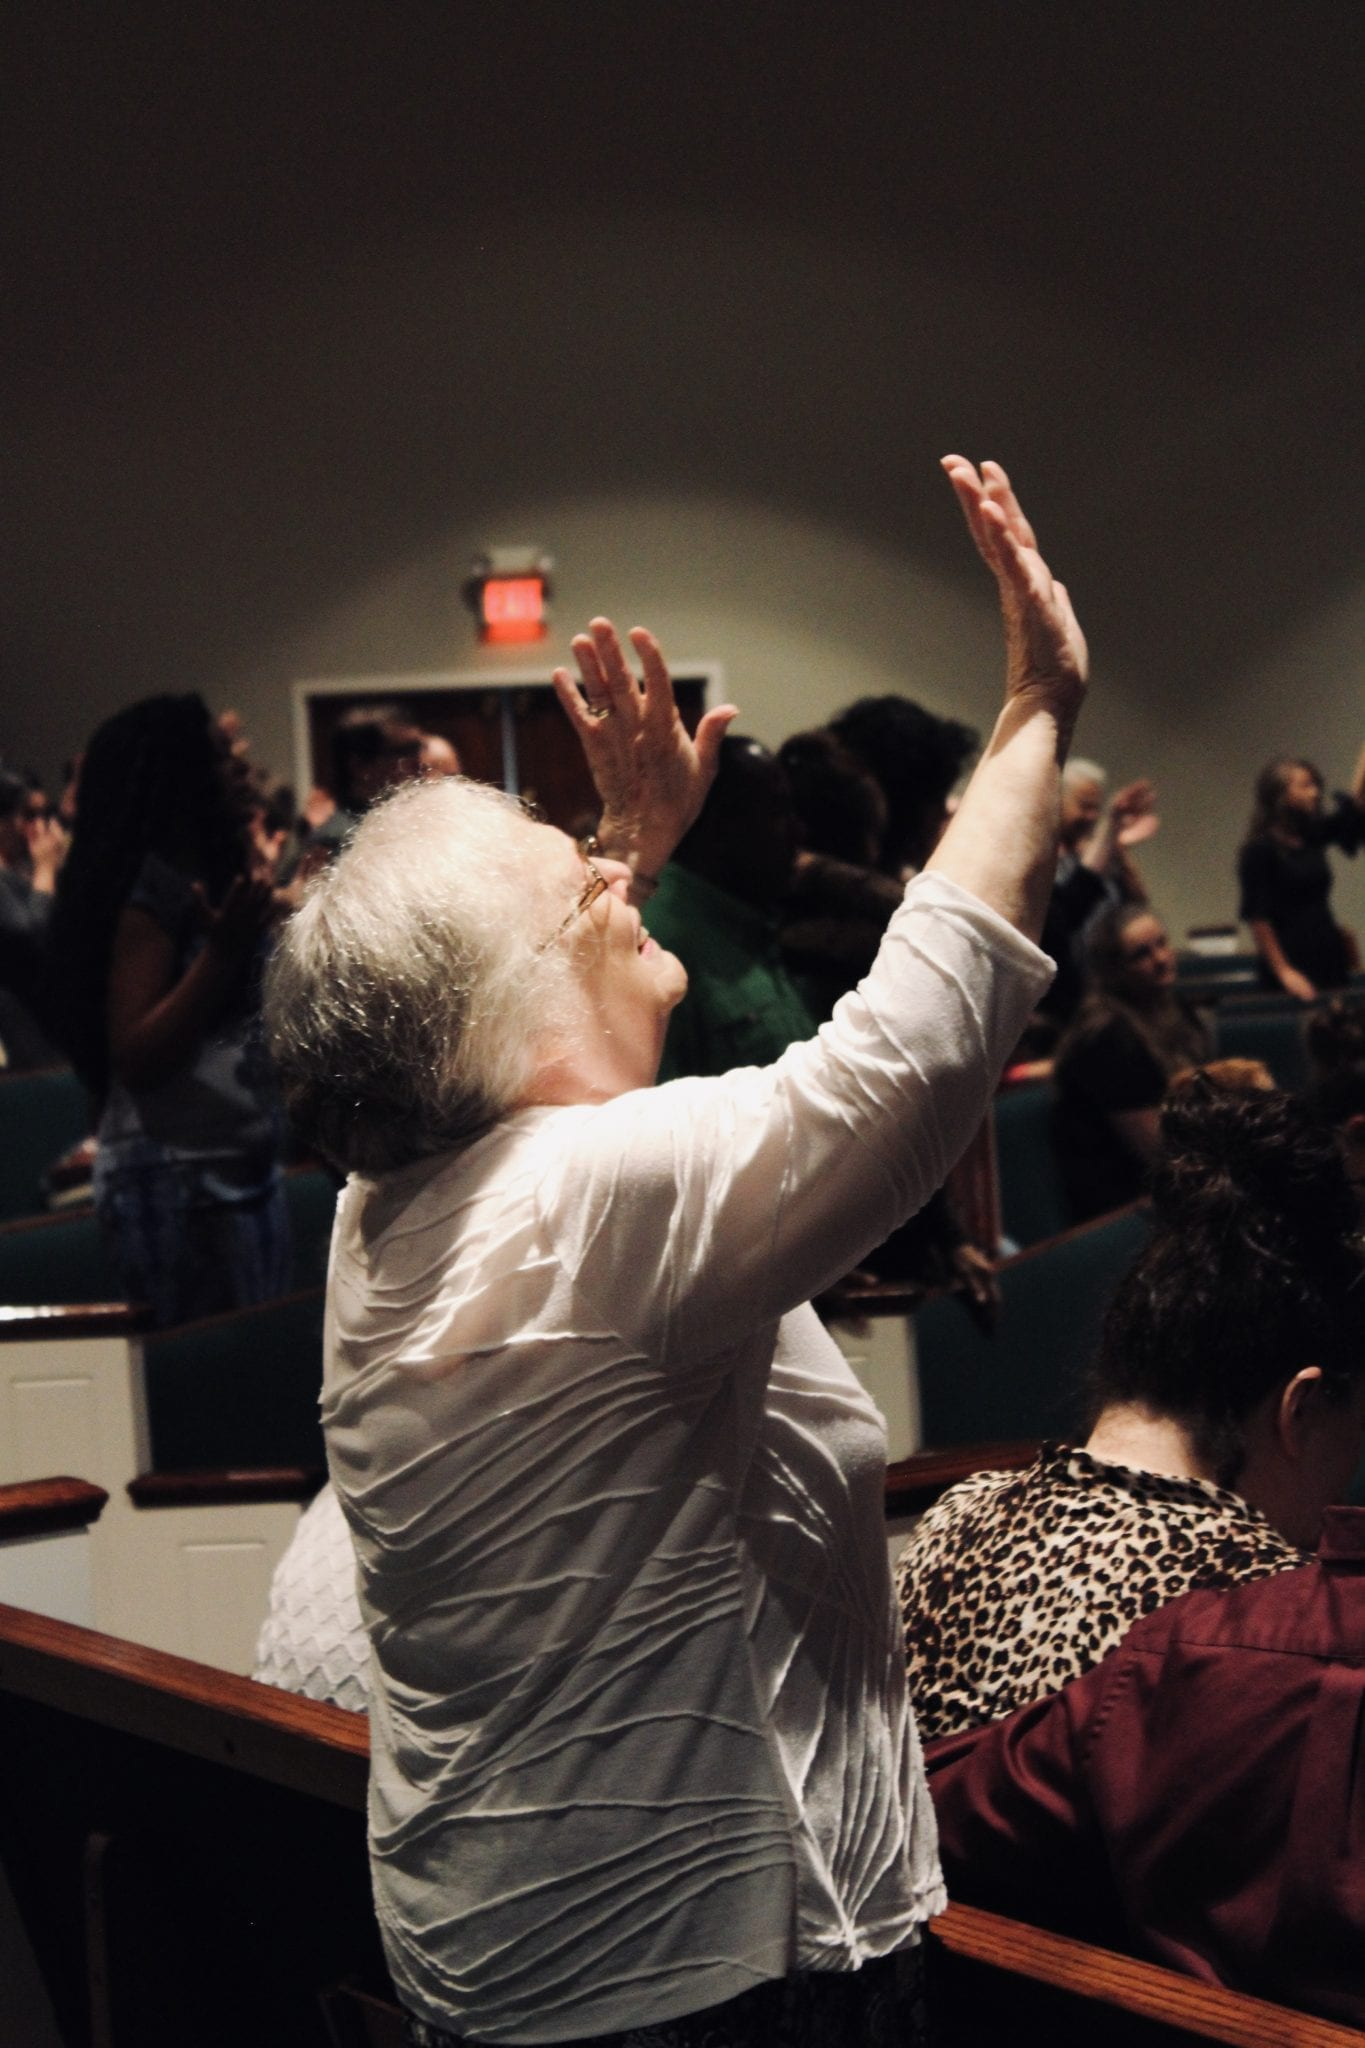 a lady worshiping in the sanctuary with others - Christ Community Church The Pentecostals - Henderson, TN